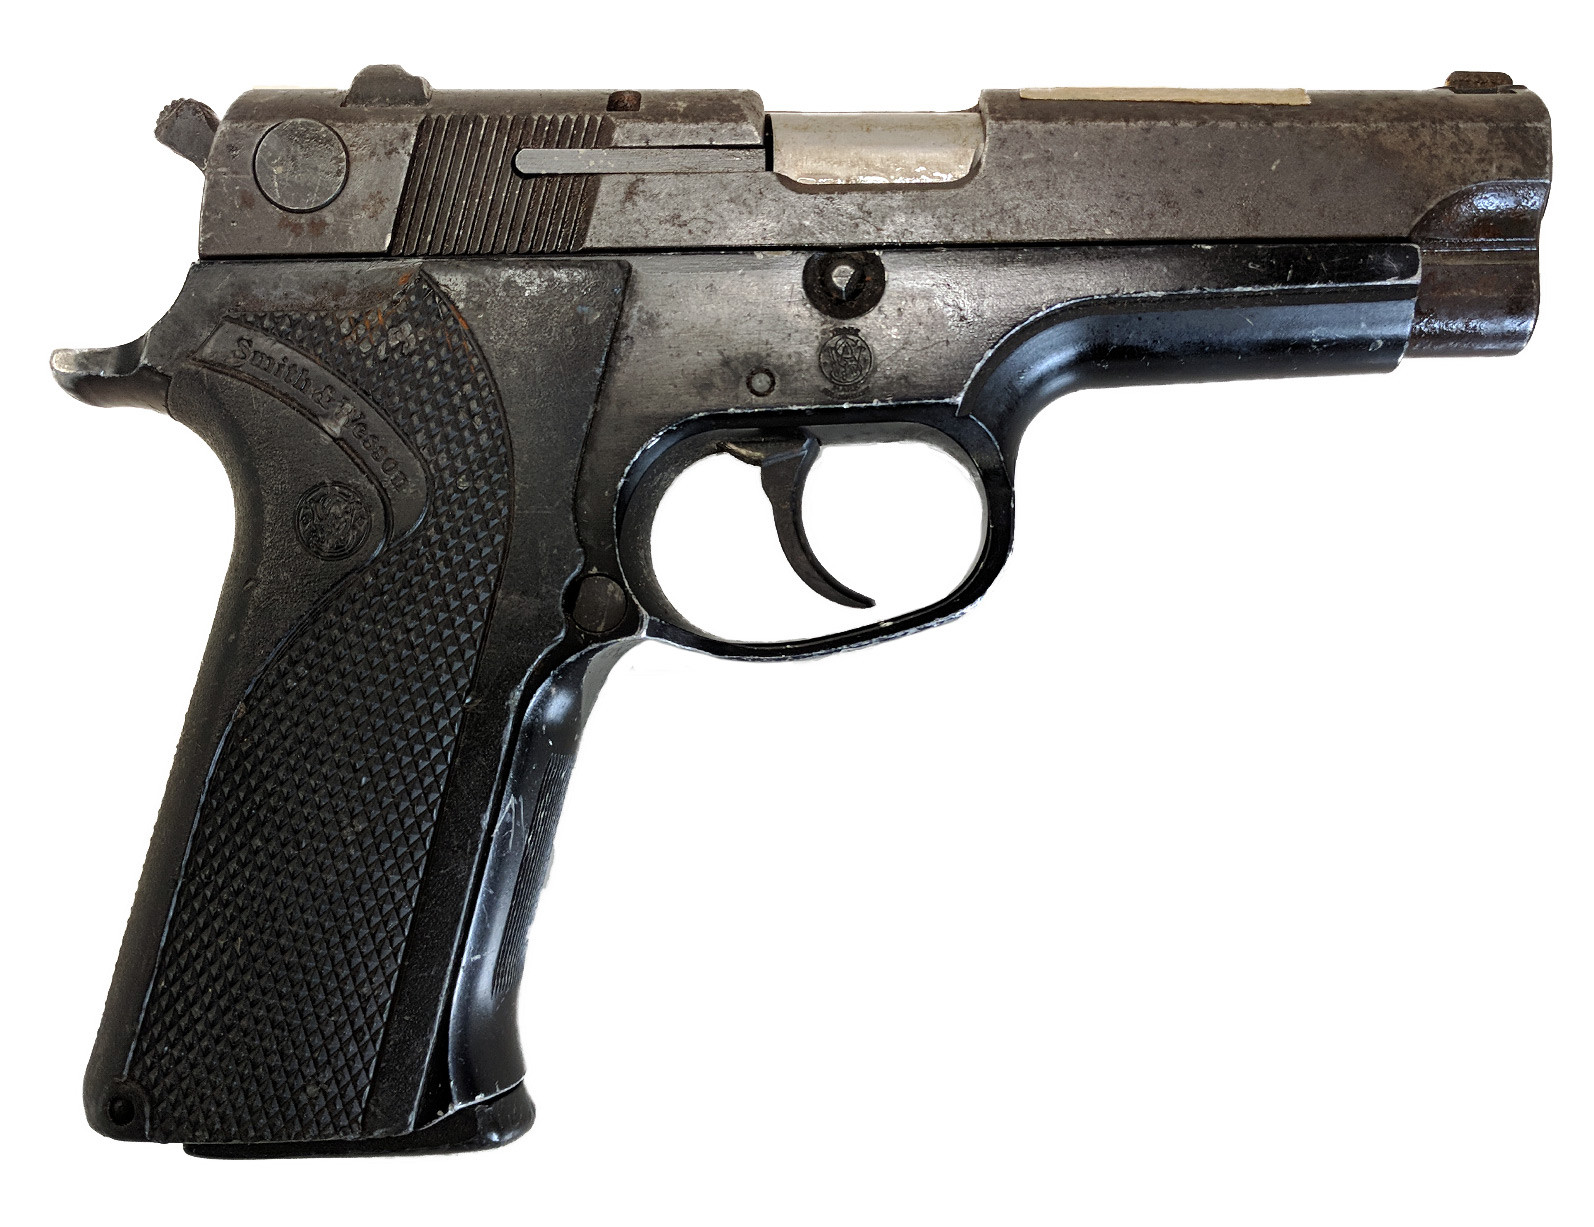 Smith & Wesson 915, 9mm, *Fair, Incomplete*